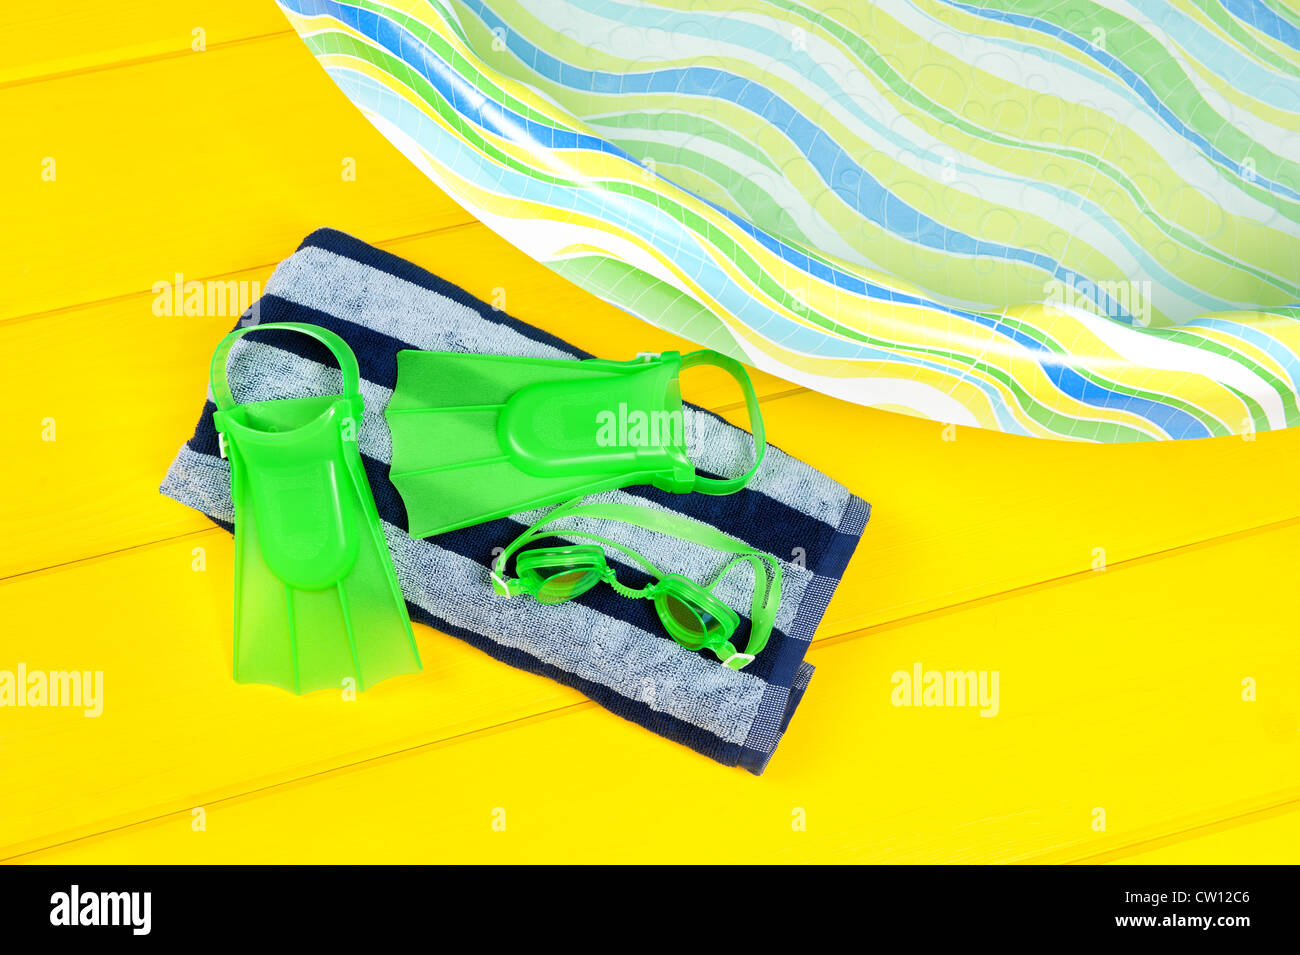 Swim flippers and eye goggles on a beach towel next to a plastic youth swimming pool. Stock Photo